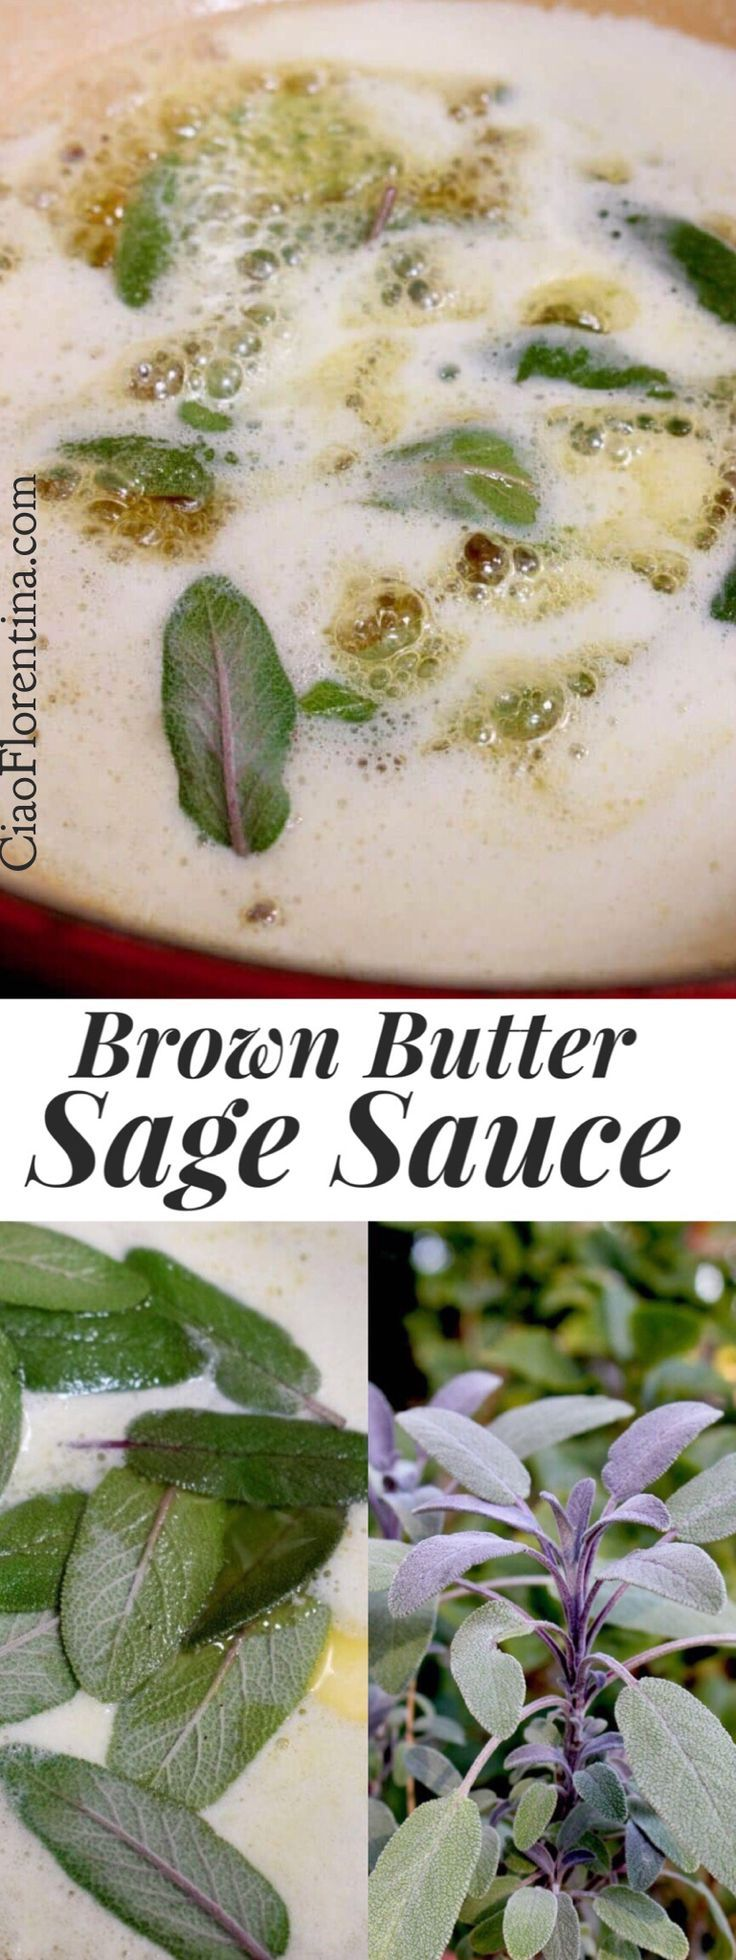 """Brown Butter Sage Sauce Recipe or """" burro bruno e salvia """" perfect to toss with Butternut Squash or mushroom ravioli, fluffy gnocchi and sprinkled with toasted bread crumbs or pine nuts 